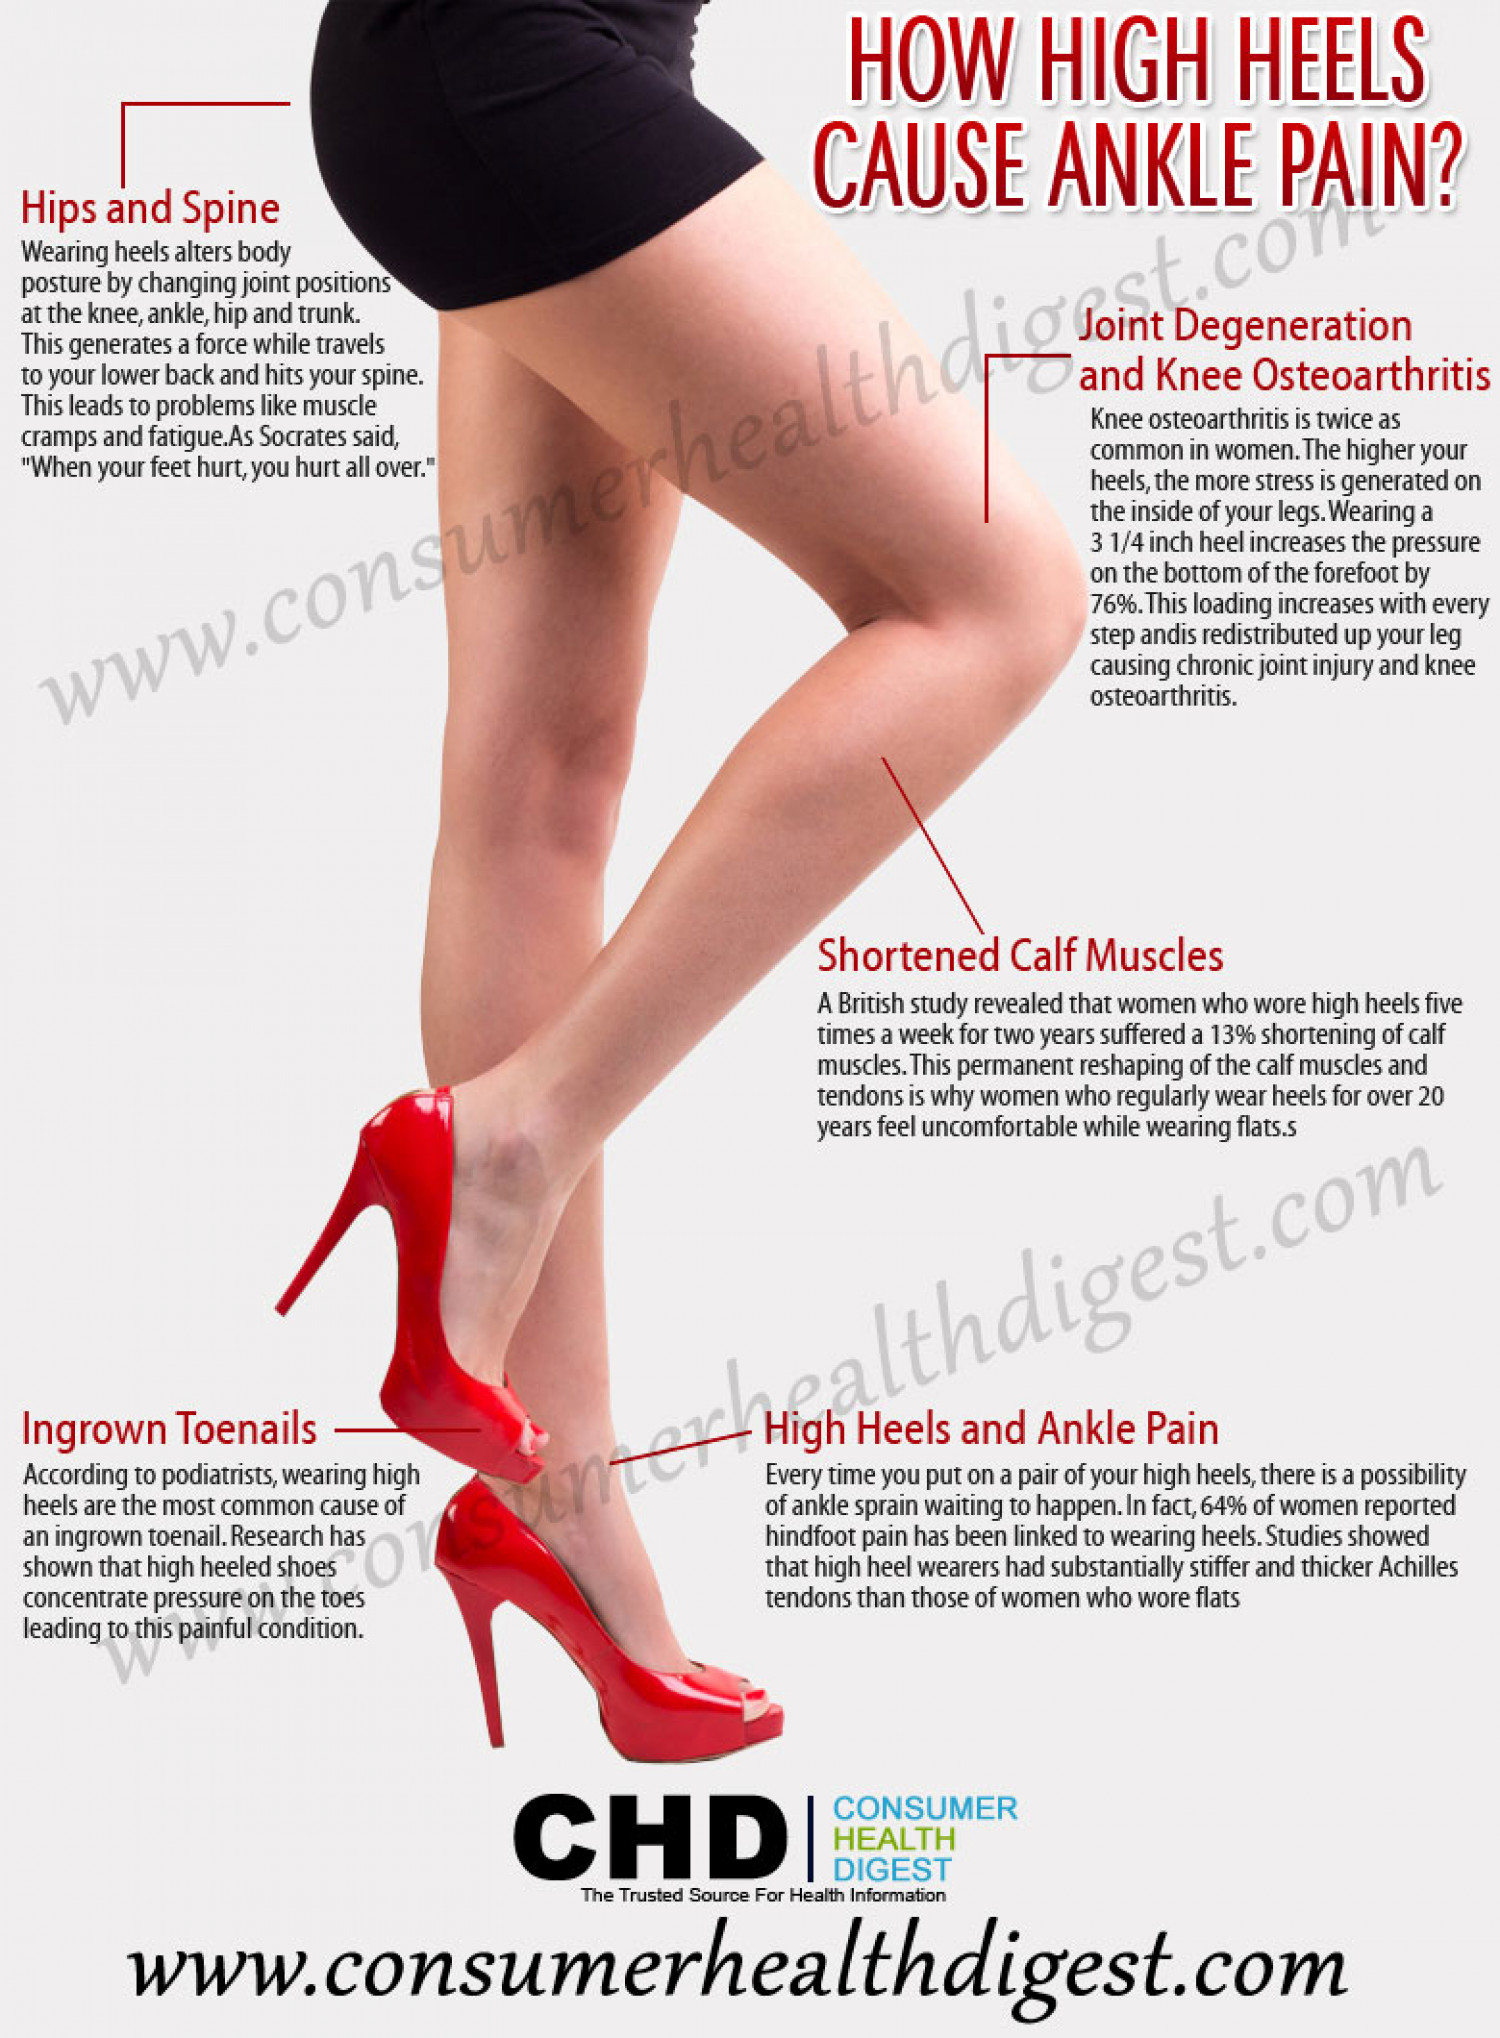 6766b95558 How High Heels Cause Ankle Pain? Infographic